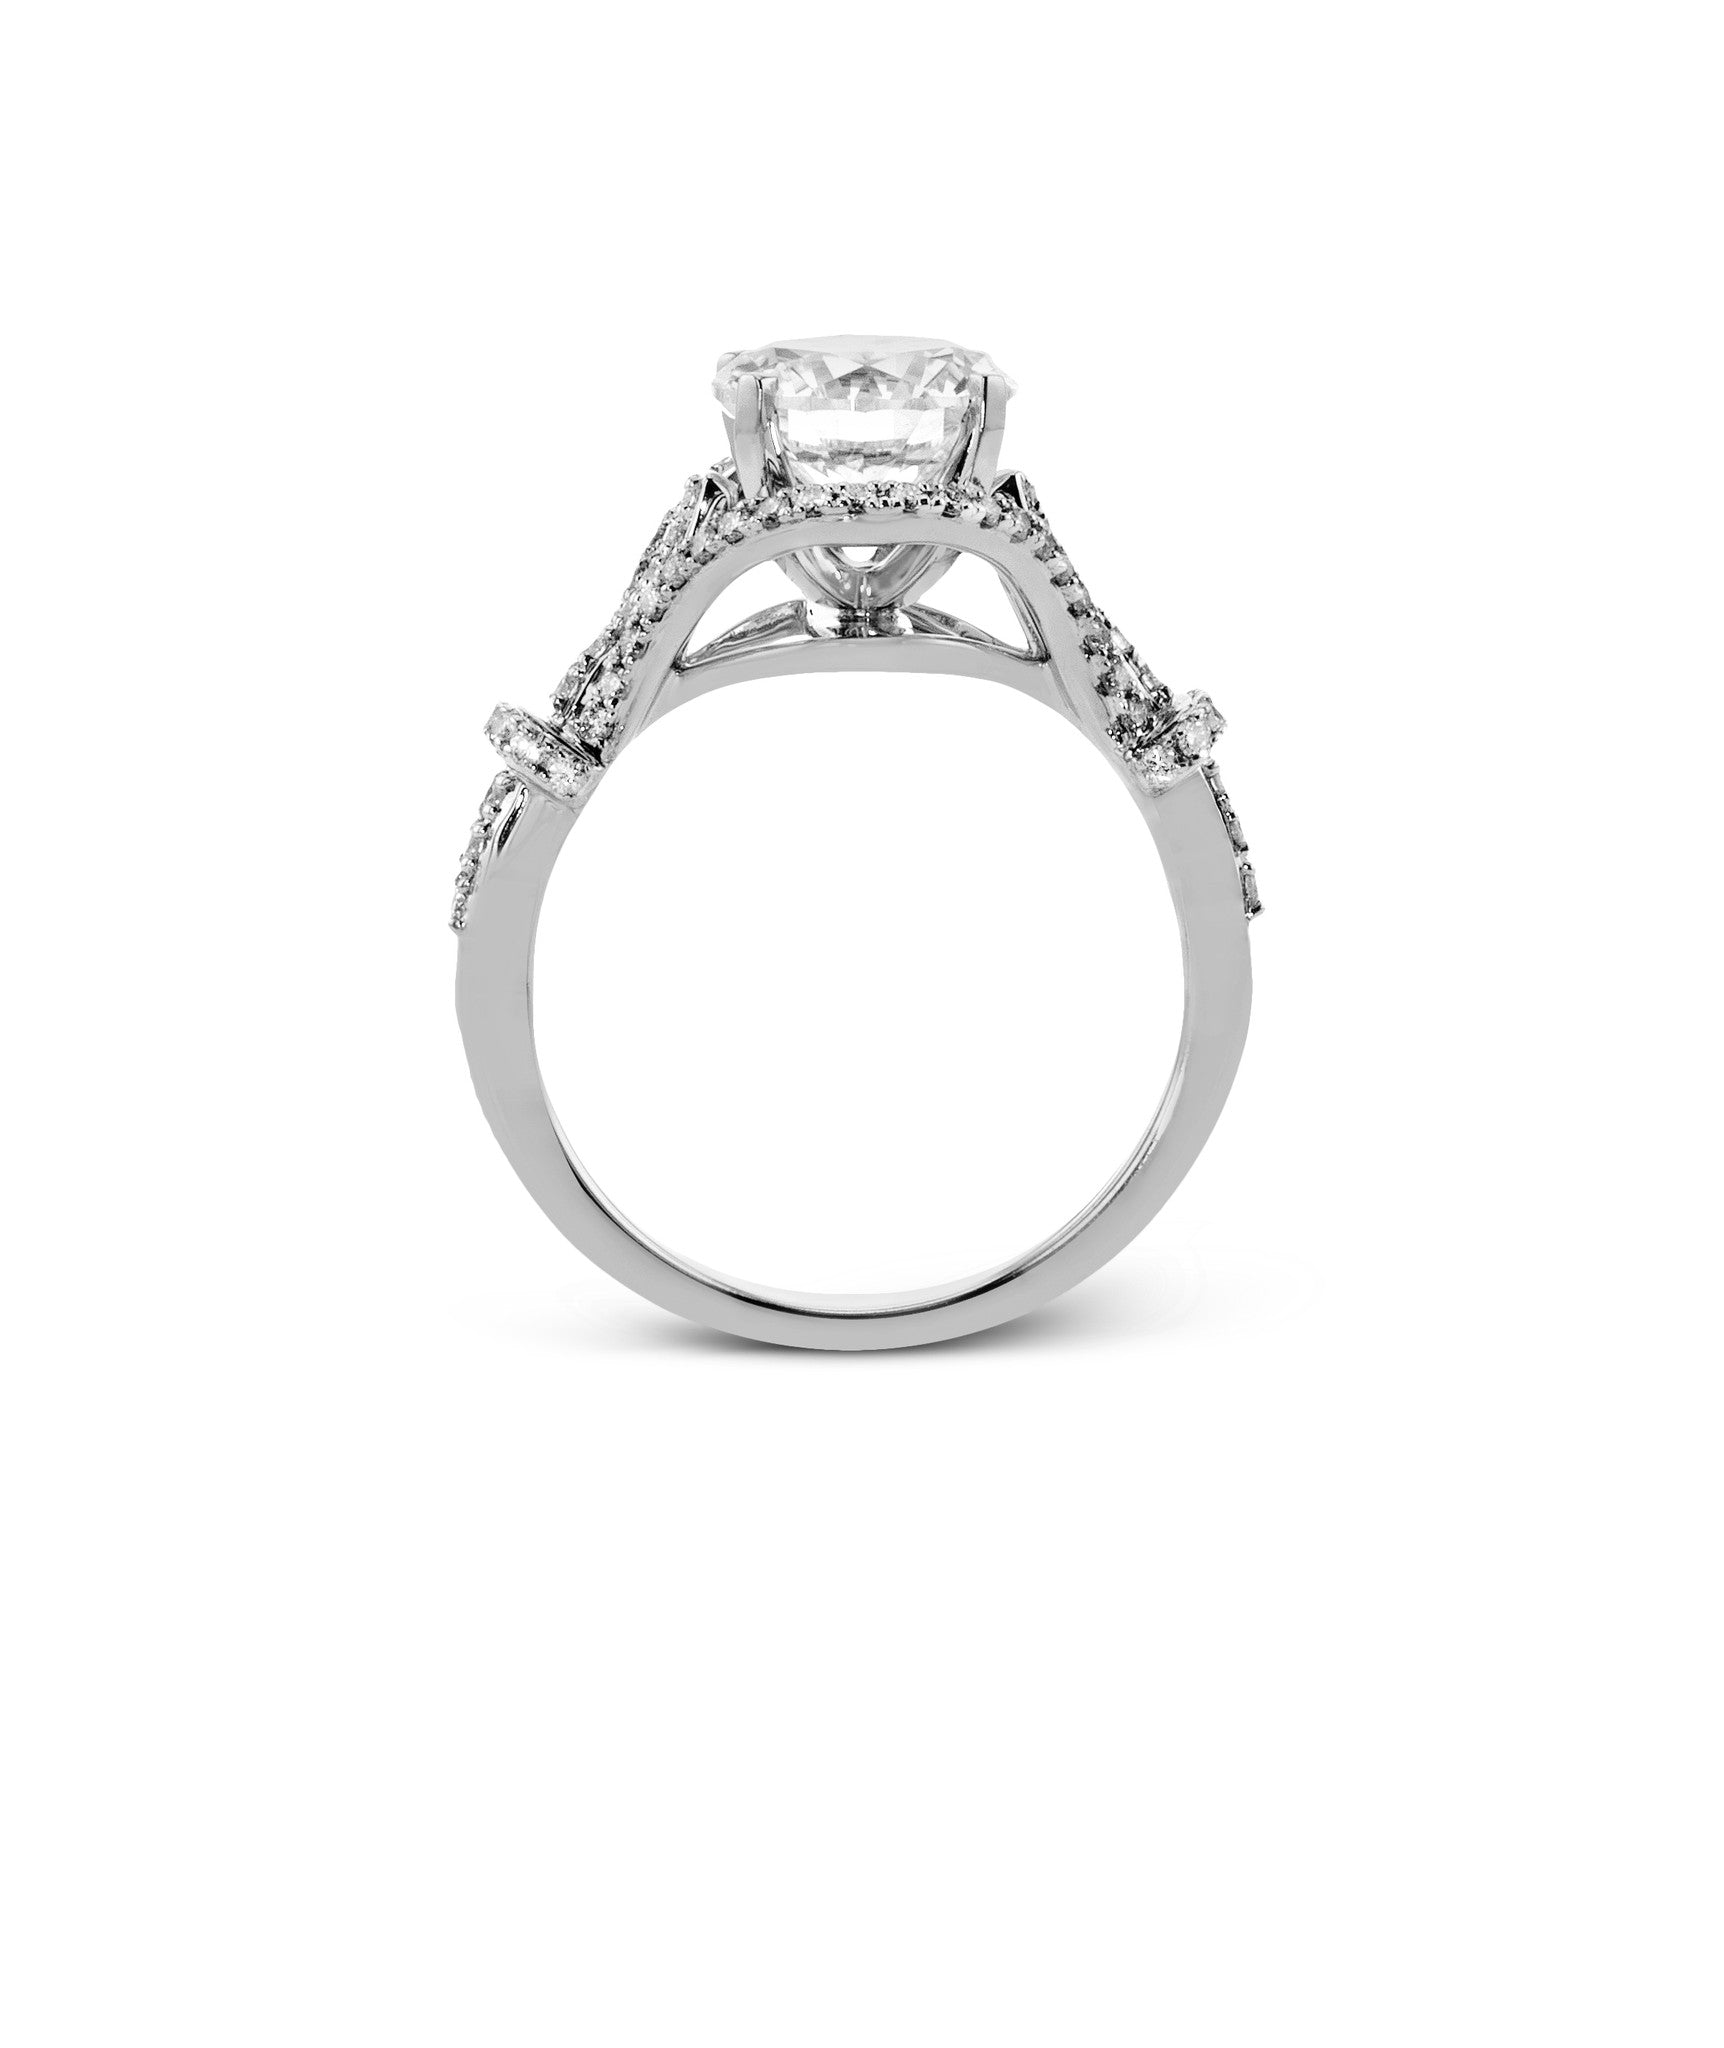 ring set da marquise rings diamond in gold twt ct w white prong halo certified split diamonds e cut engagement shank